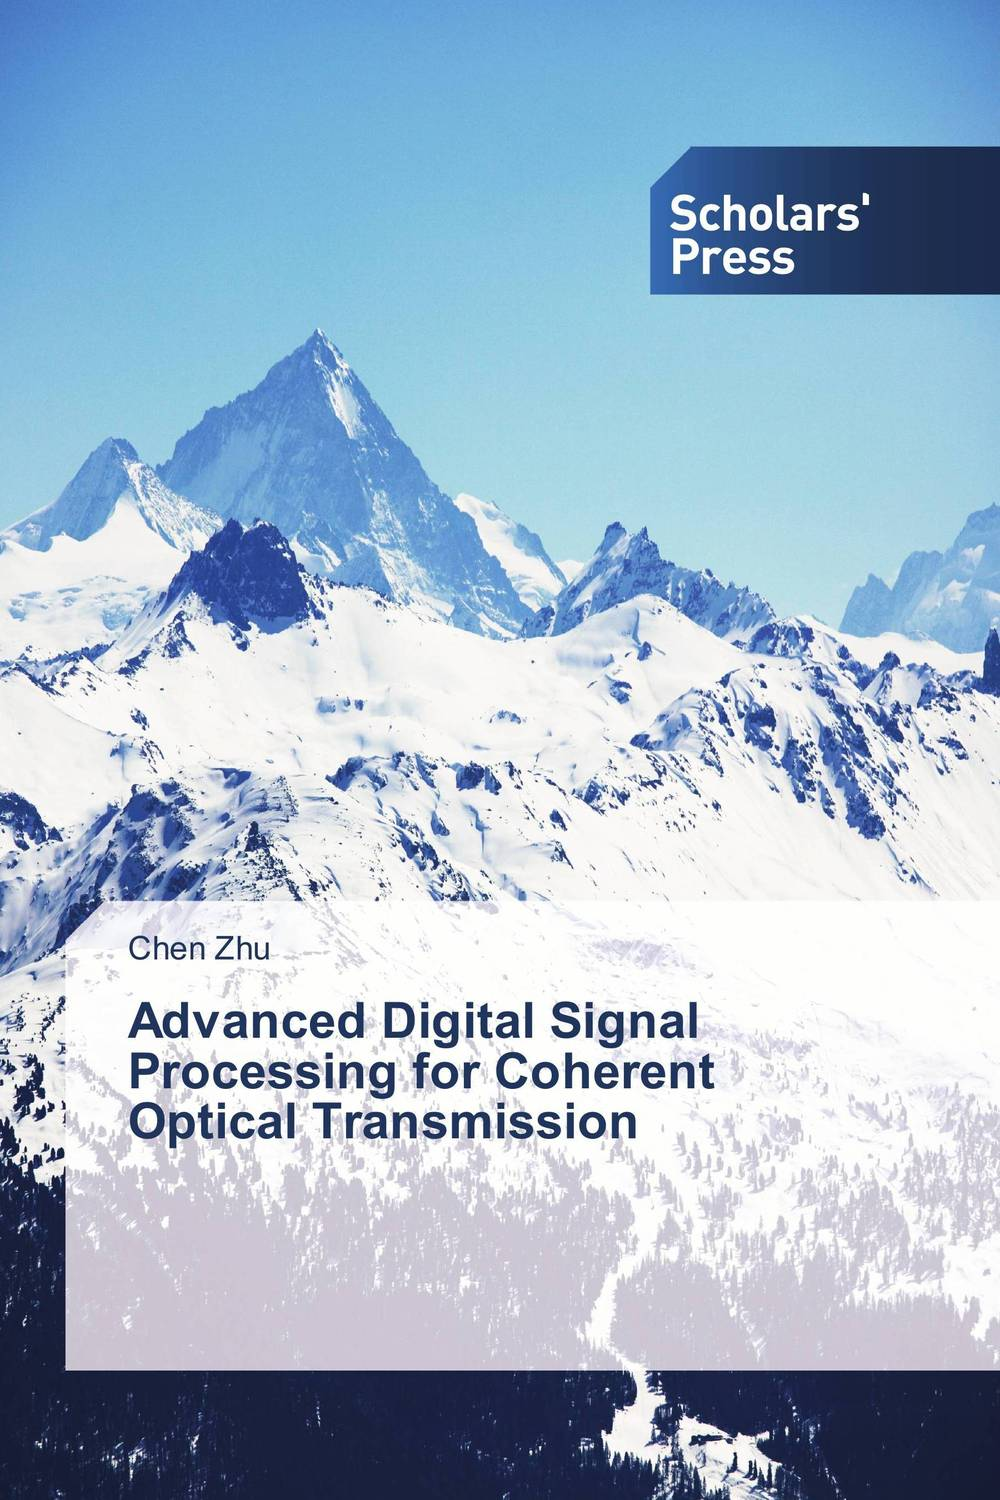 Advanced Digital Signal Processing for Coherent Optical Transmission квартиры в люберцах срочно продам c с фото